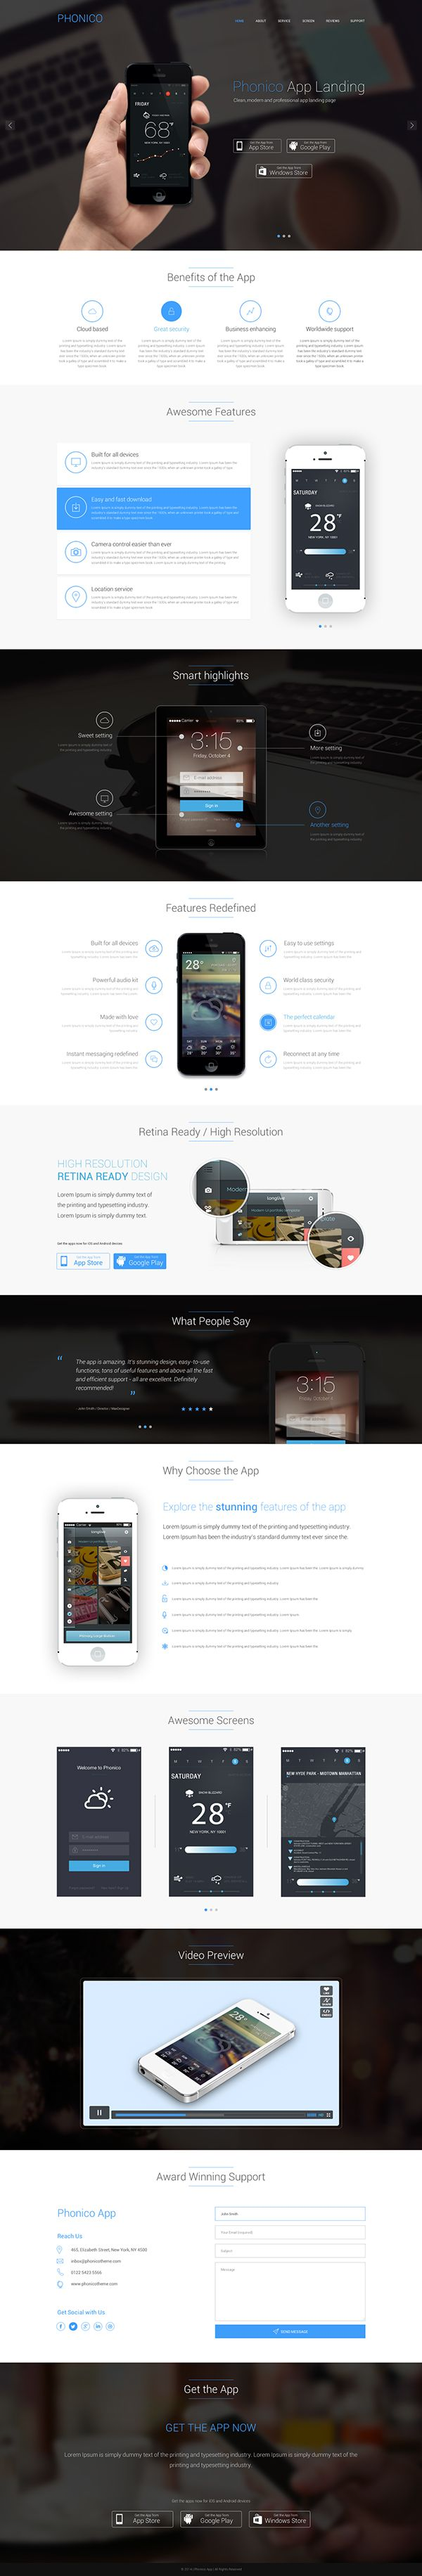 Phonico - Mobile Landing Template - Dark  Blue by Md. Shahadat Hussain, via Behance